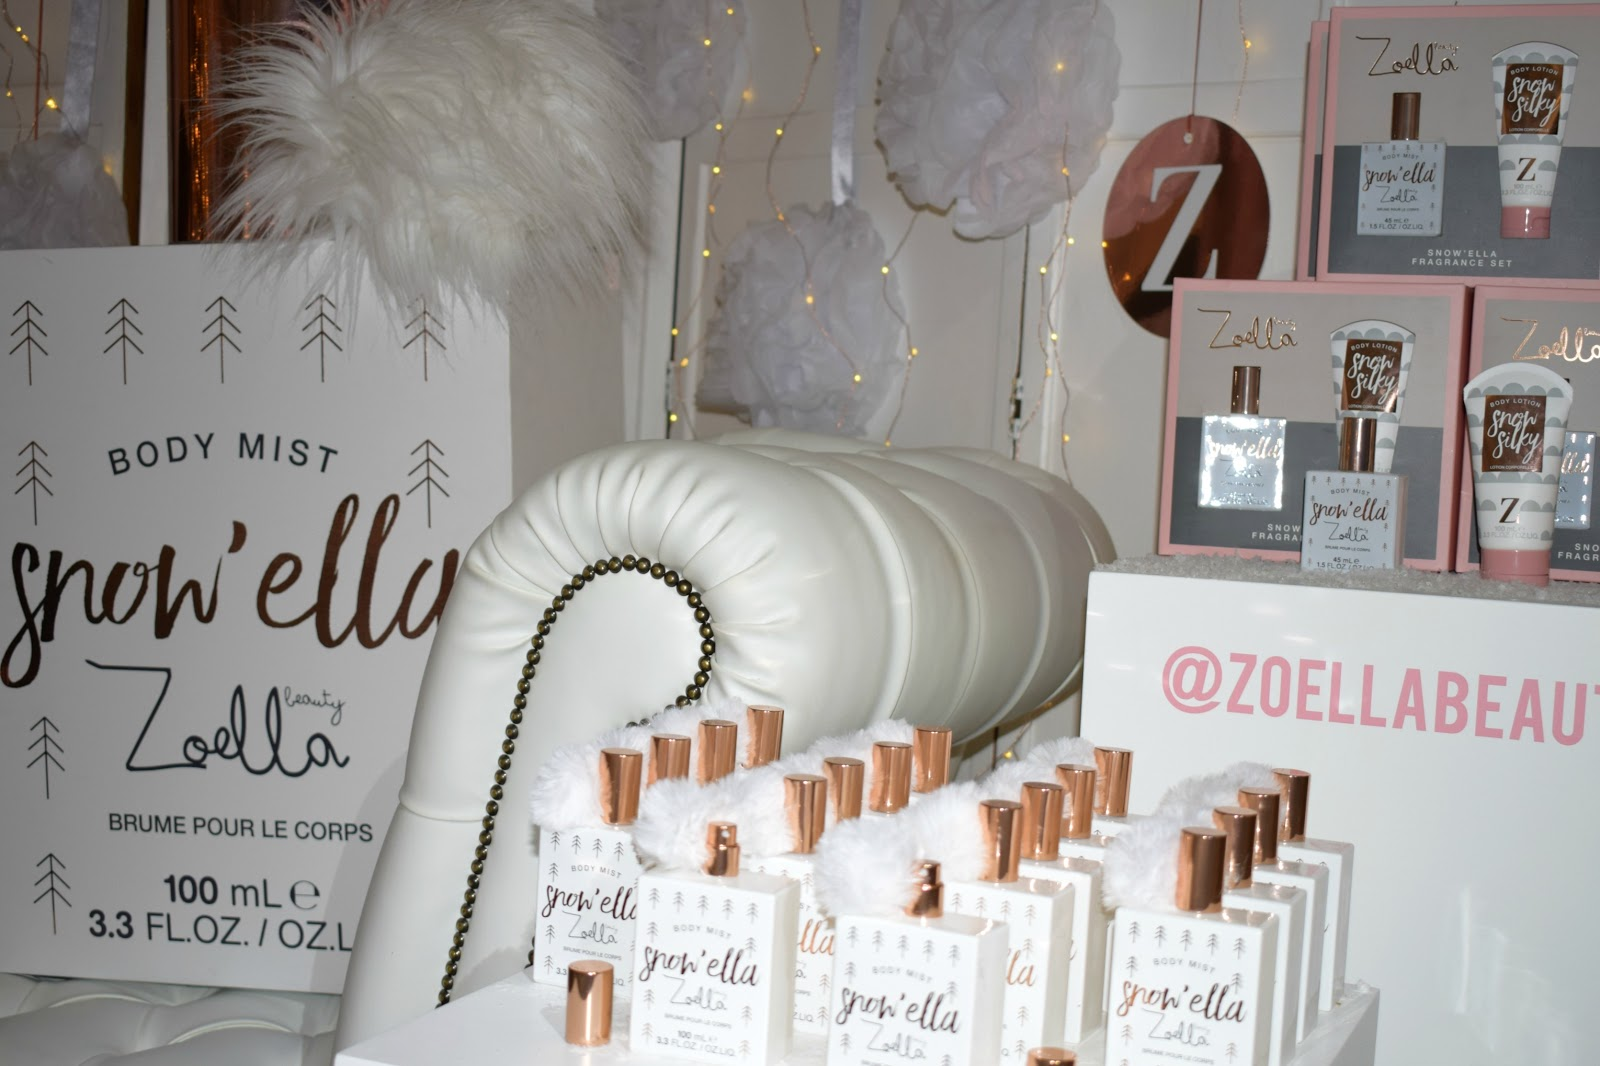 Beauty &  Lifestyle- Zoella's winter wonderland and new launches